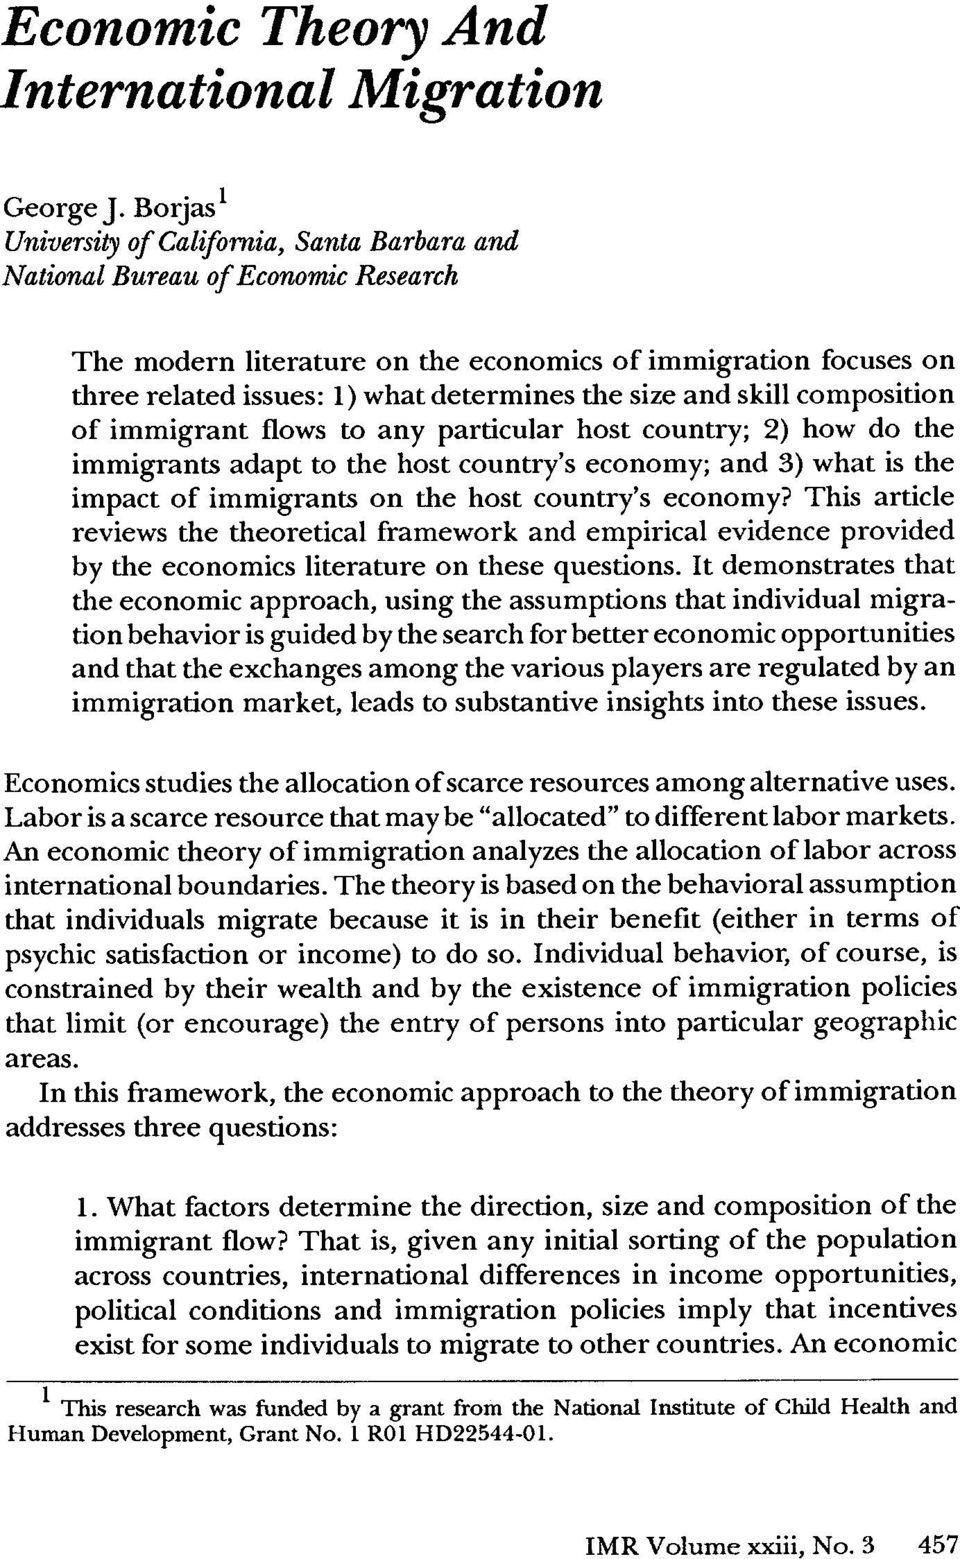 size and skill composition of immigrant flows to any particular host country; 2) how do the immigrants adapt to the host country's economy; and 3) what is the impact of immigrants on the host